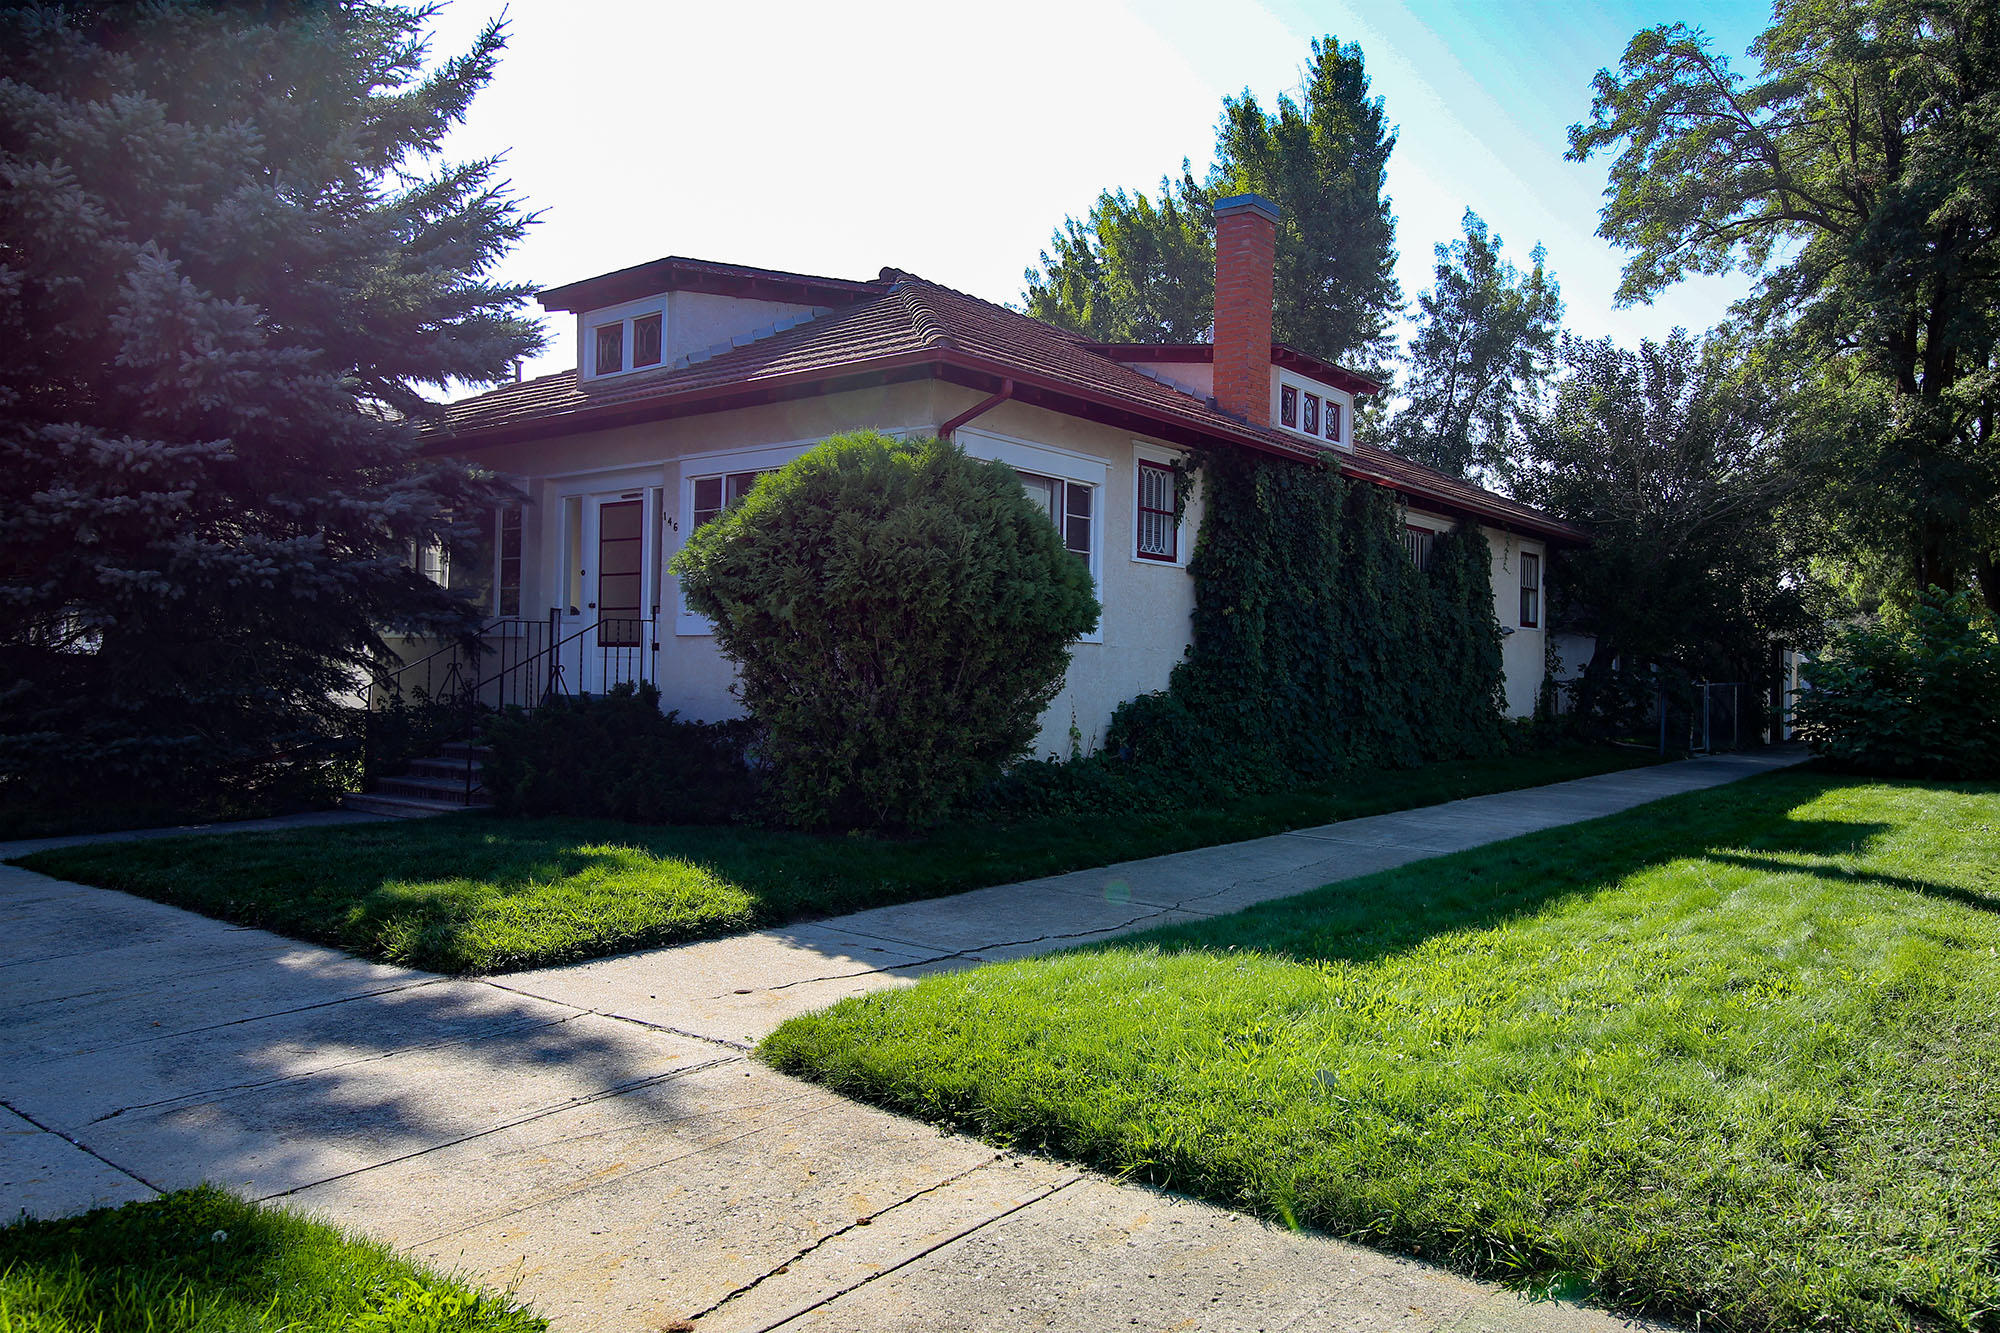 146 Whitney Street, Sheridan, Wyoming 82801, 2 Bedrooms Bedrooms, ,1 BathroomBathrooms,Residential,For Sale,Whitney,18-958